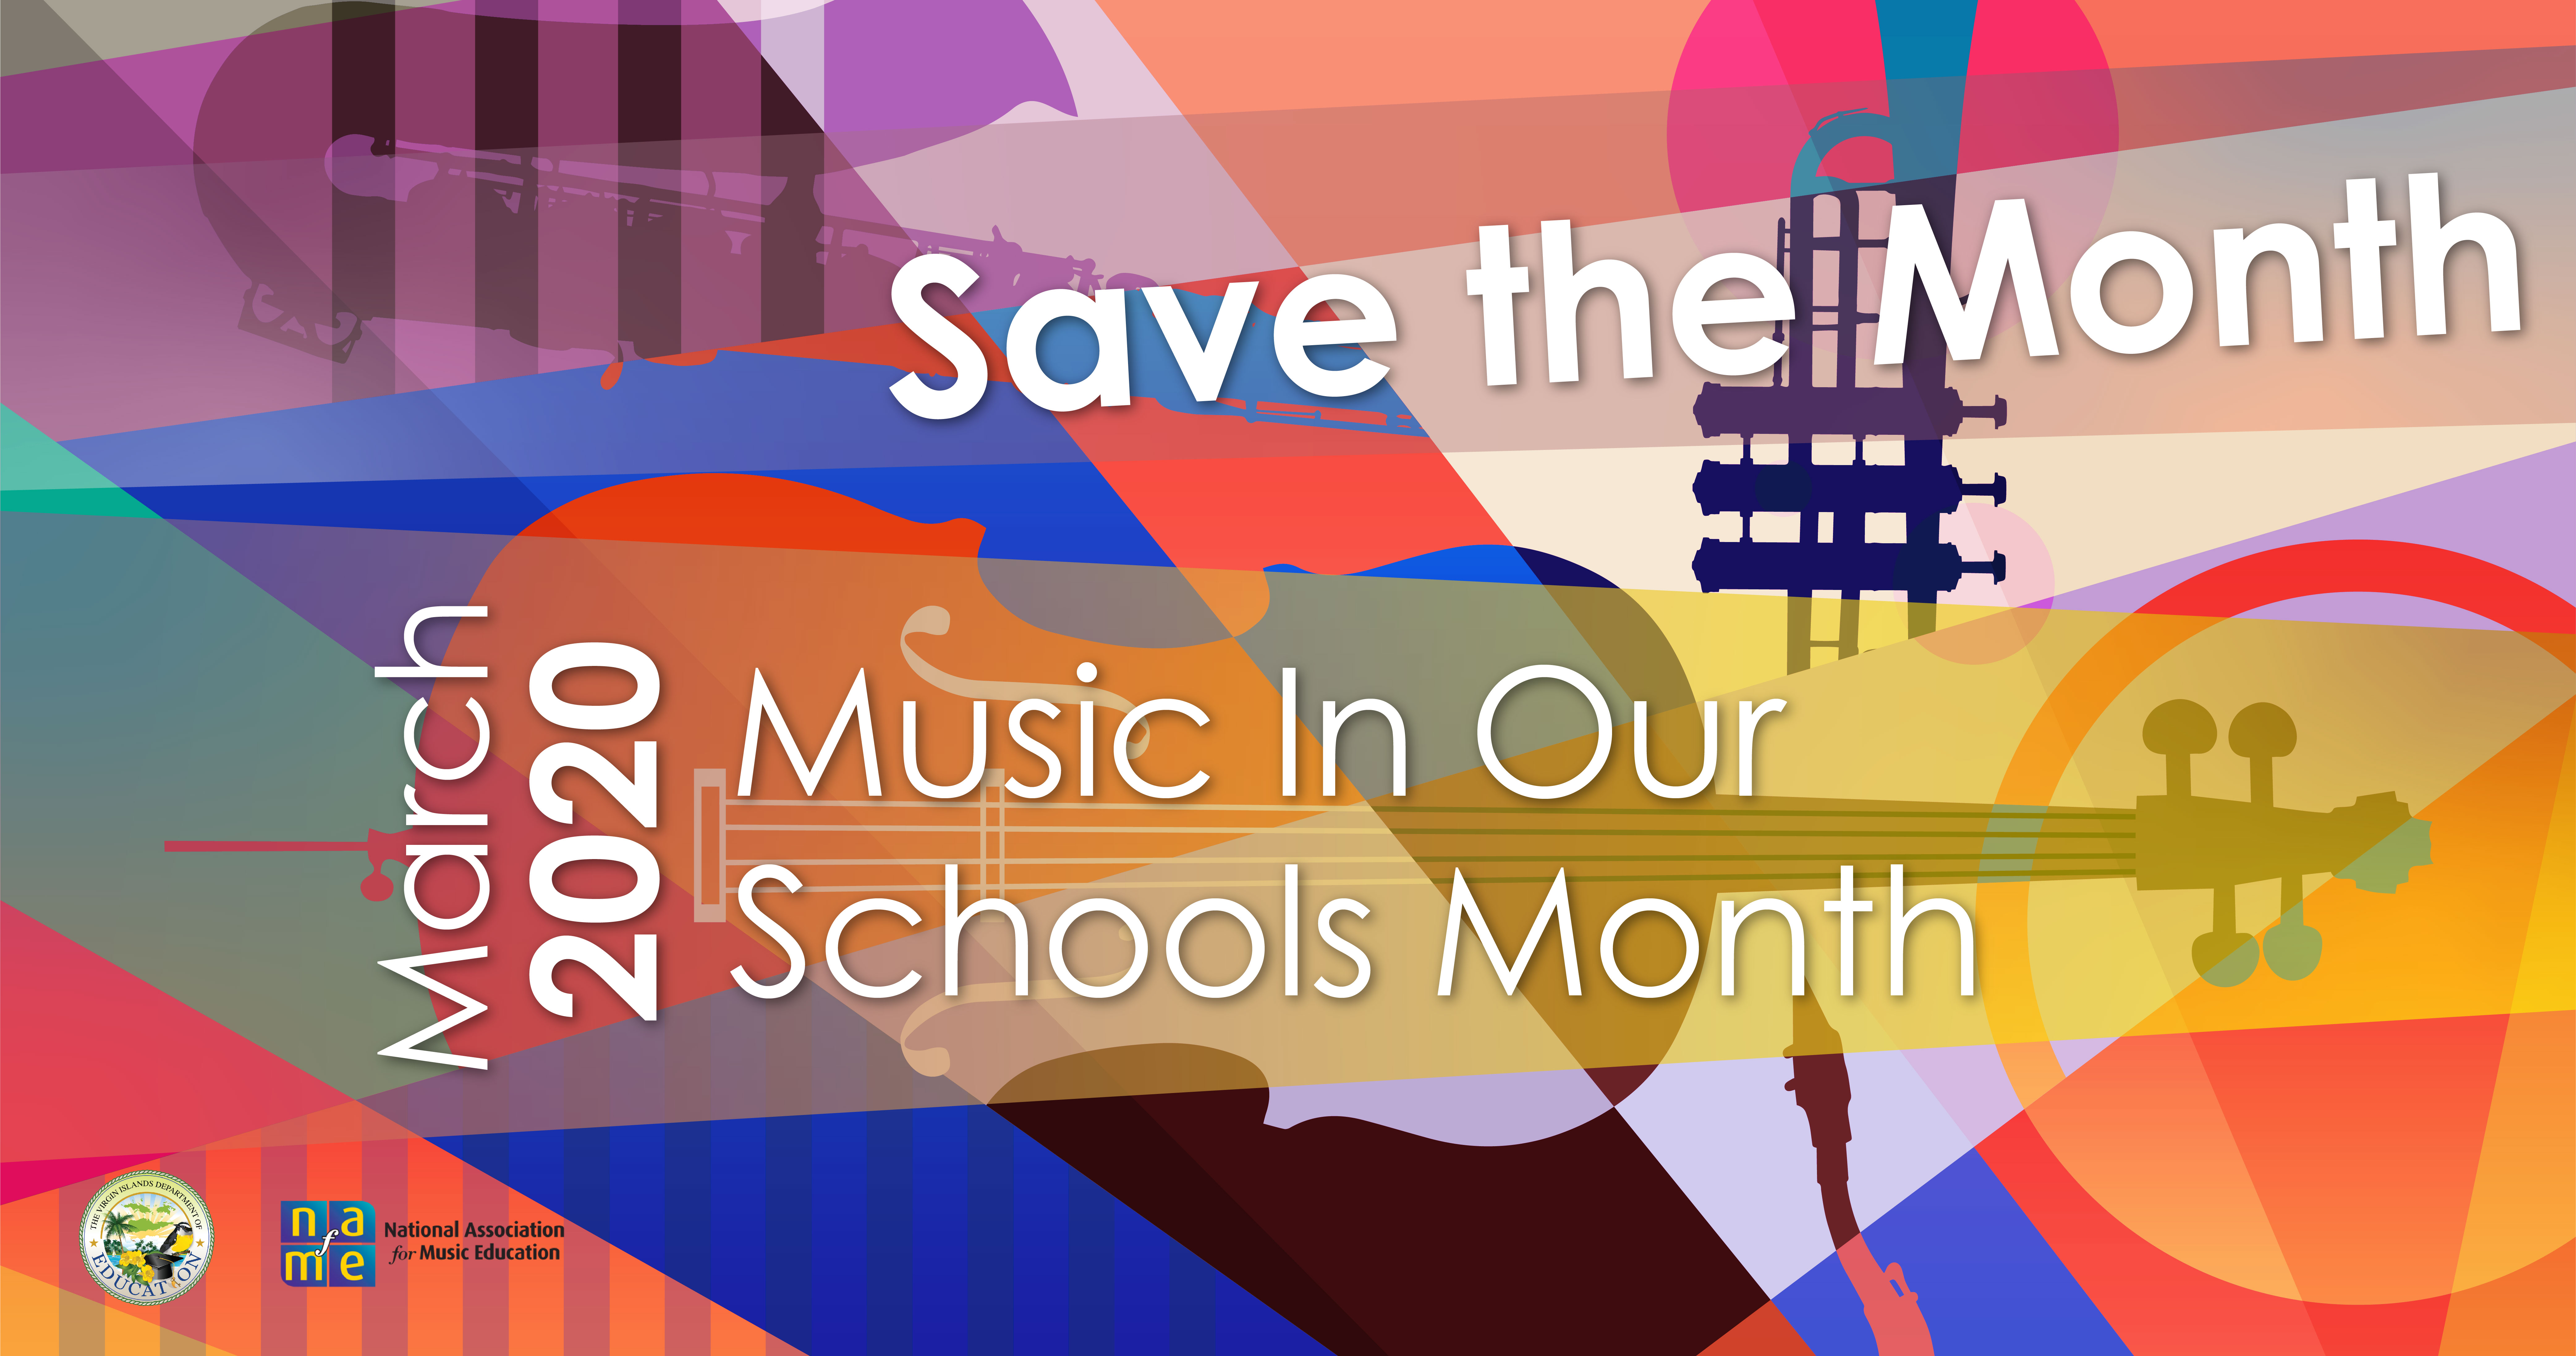 Learn More about Music in Our Schools Month!